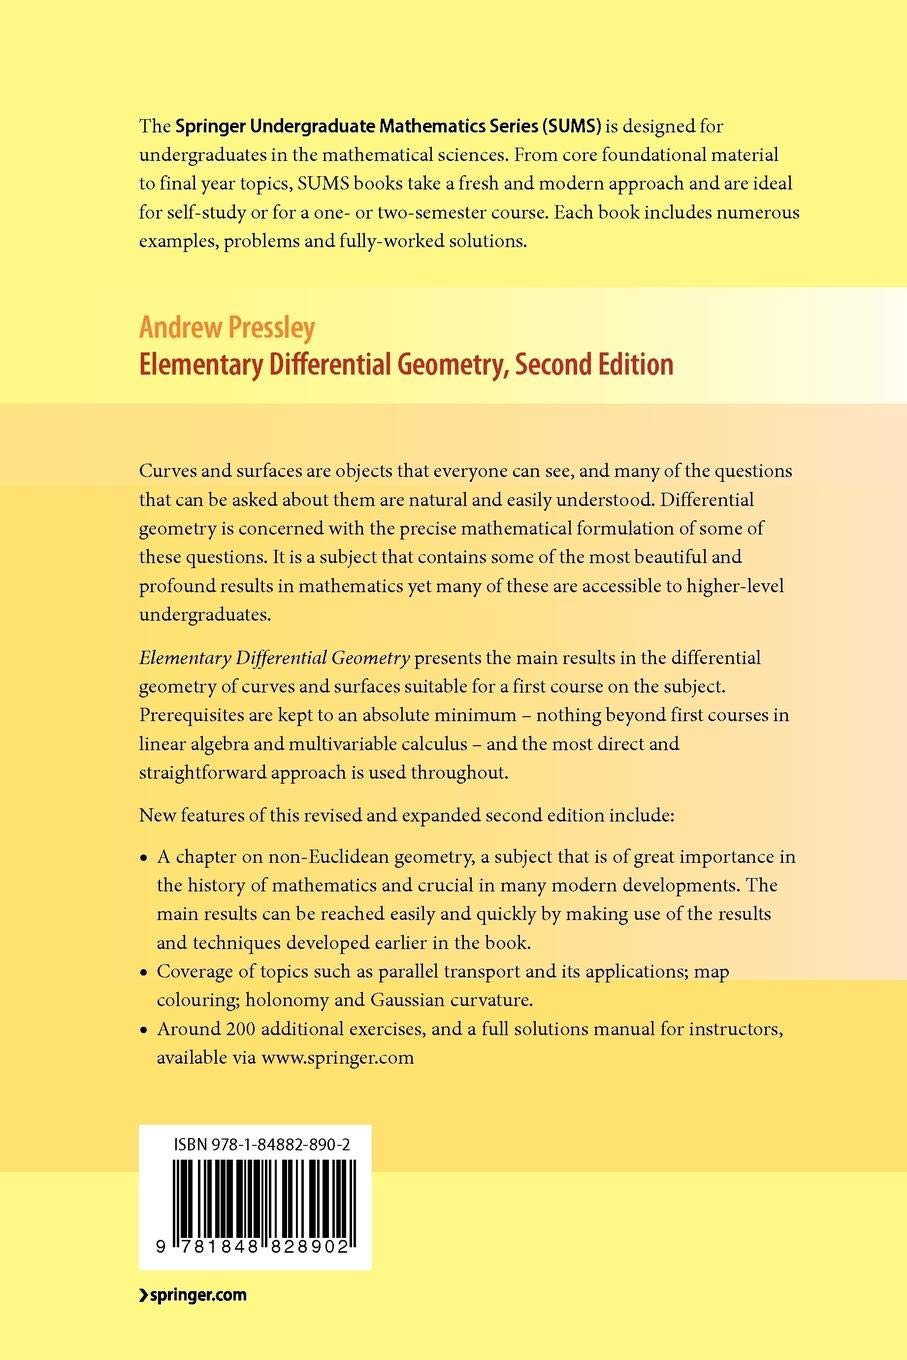 Andrew Pressley Elementary Differential Geometry Pdf